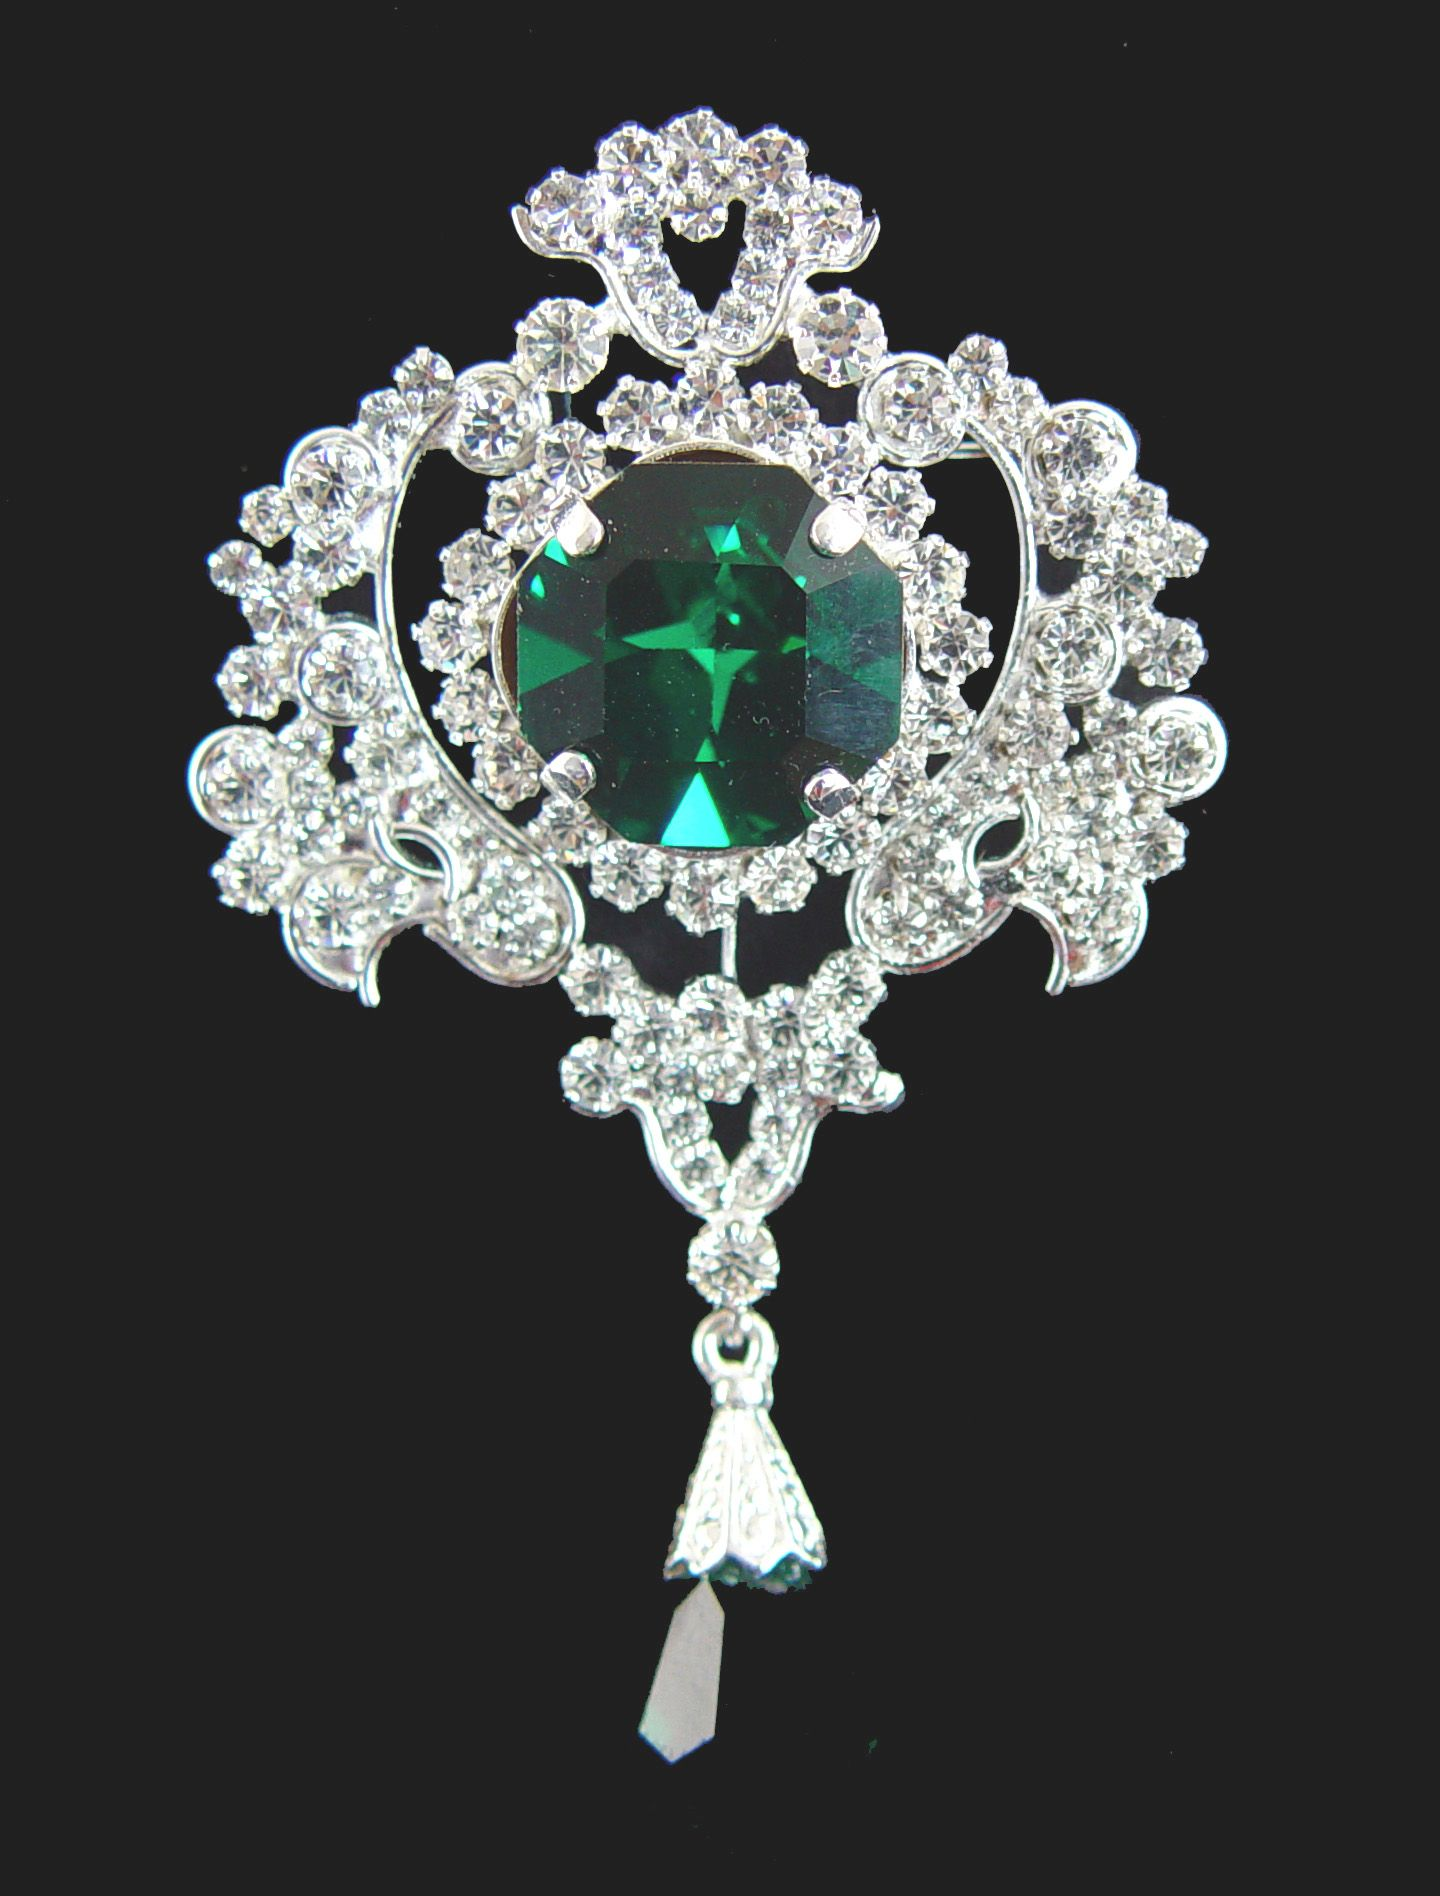 The diamond scroll brooch with the centre lozenge shaped emerald was made by taking the centre of the Stomacher and hanging the emerald drop from the Cullinan VIII